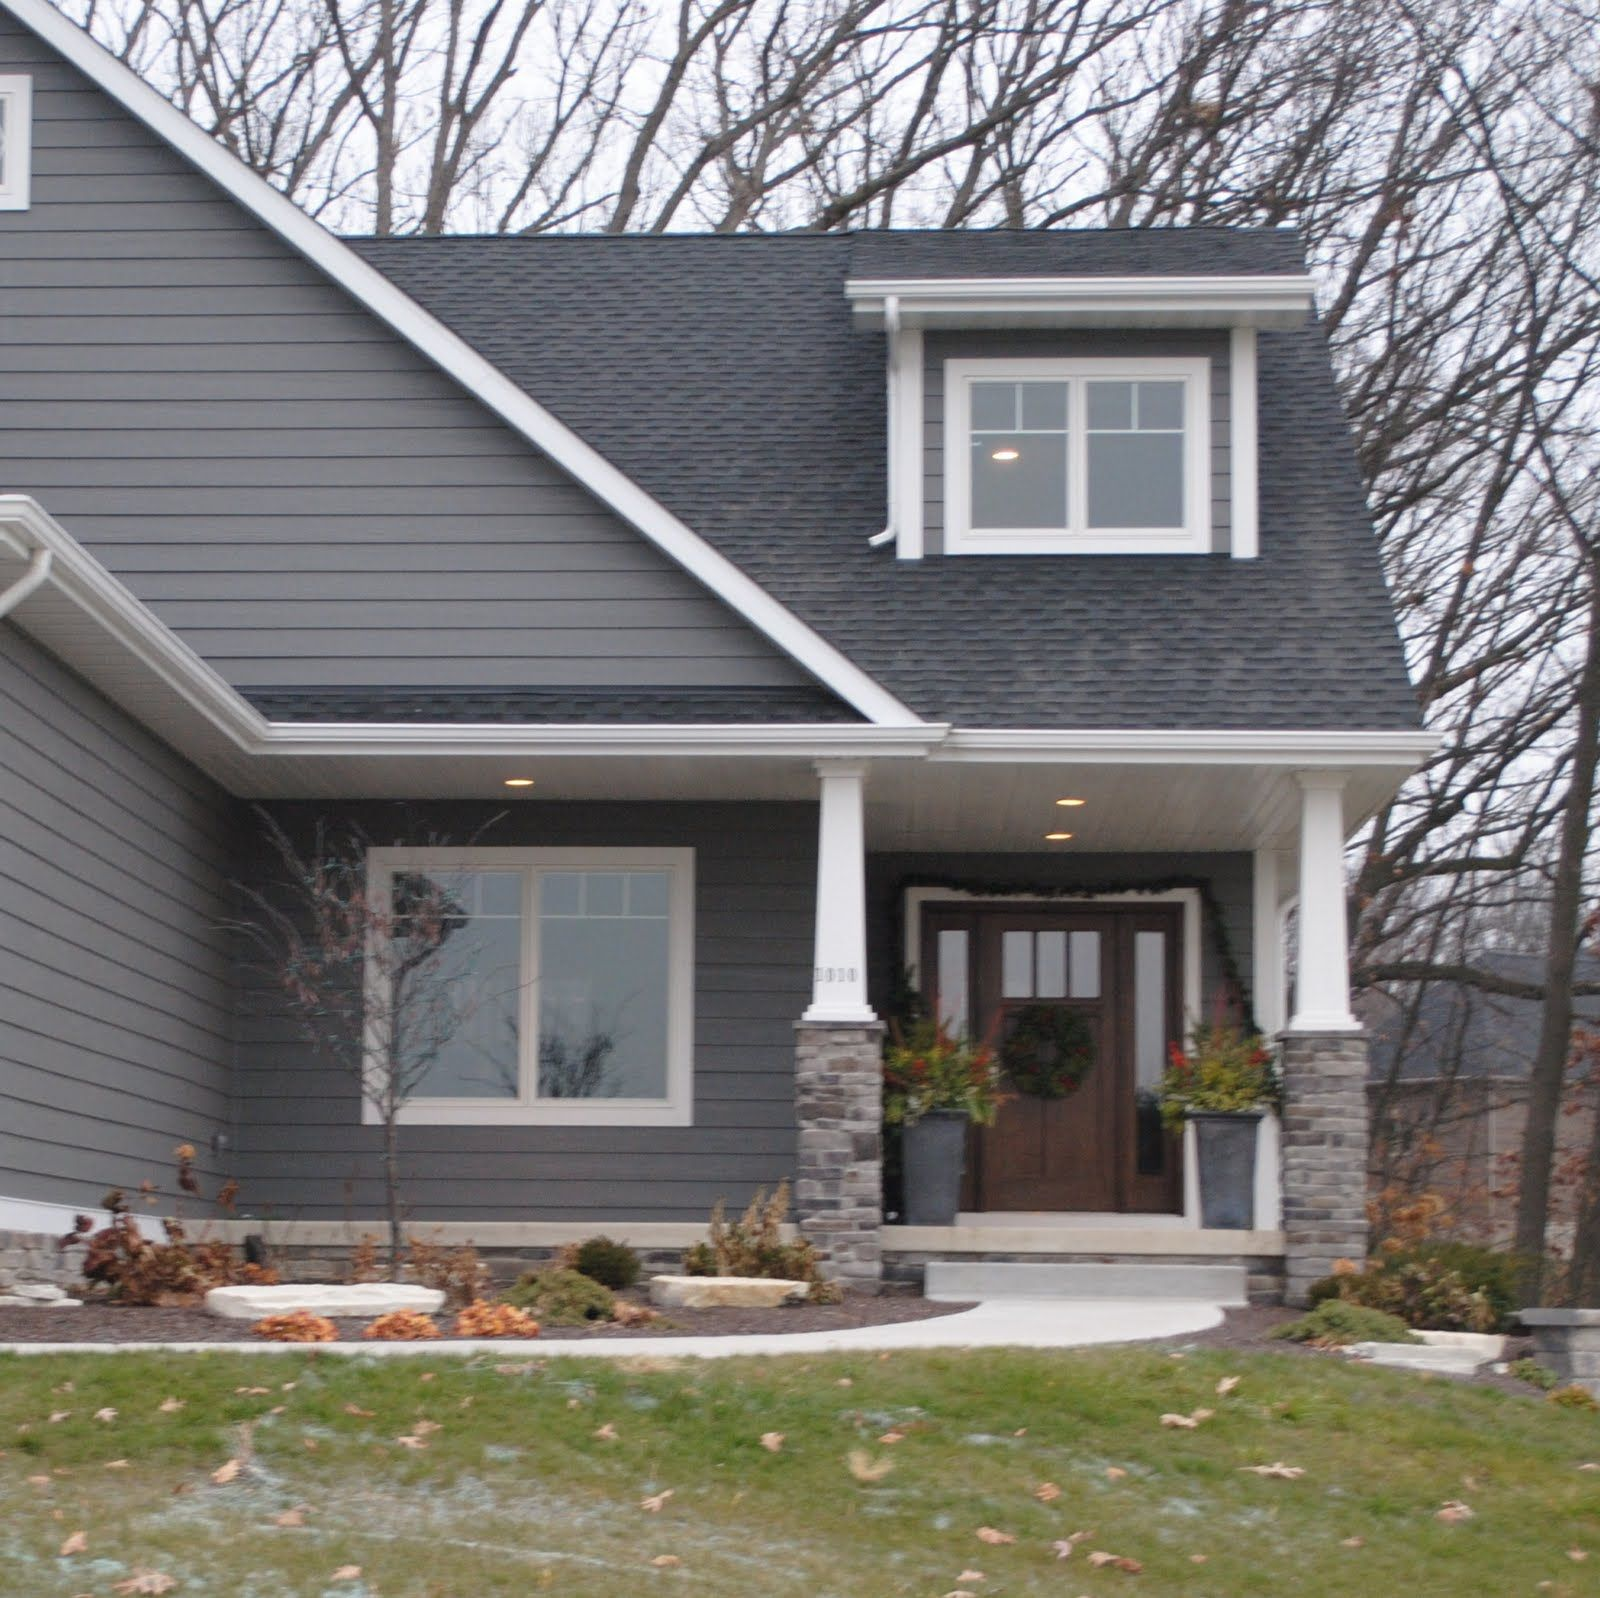 dark gray vinyl siding and white trim houses